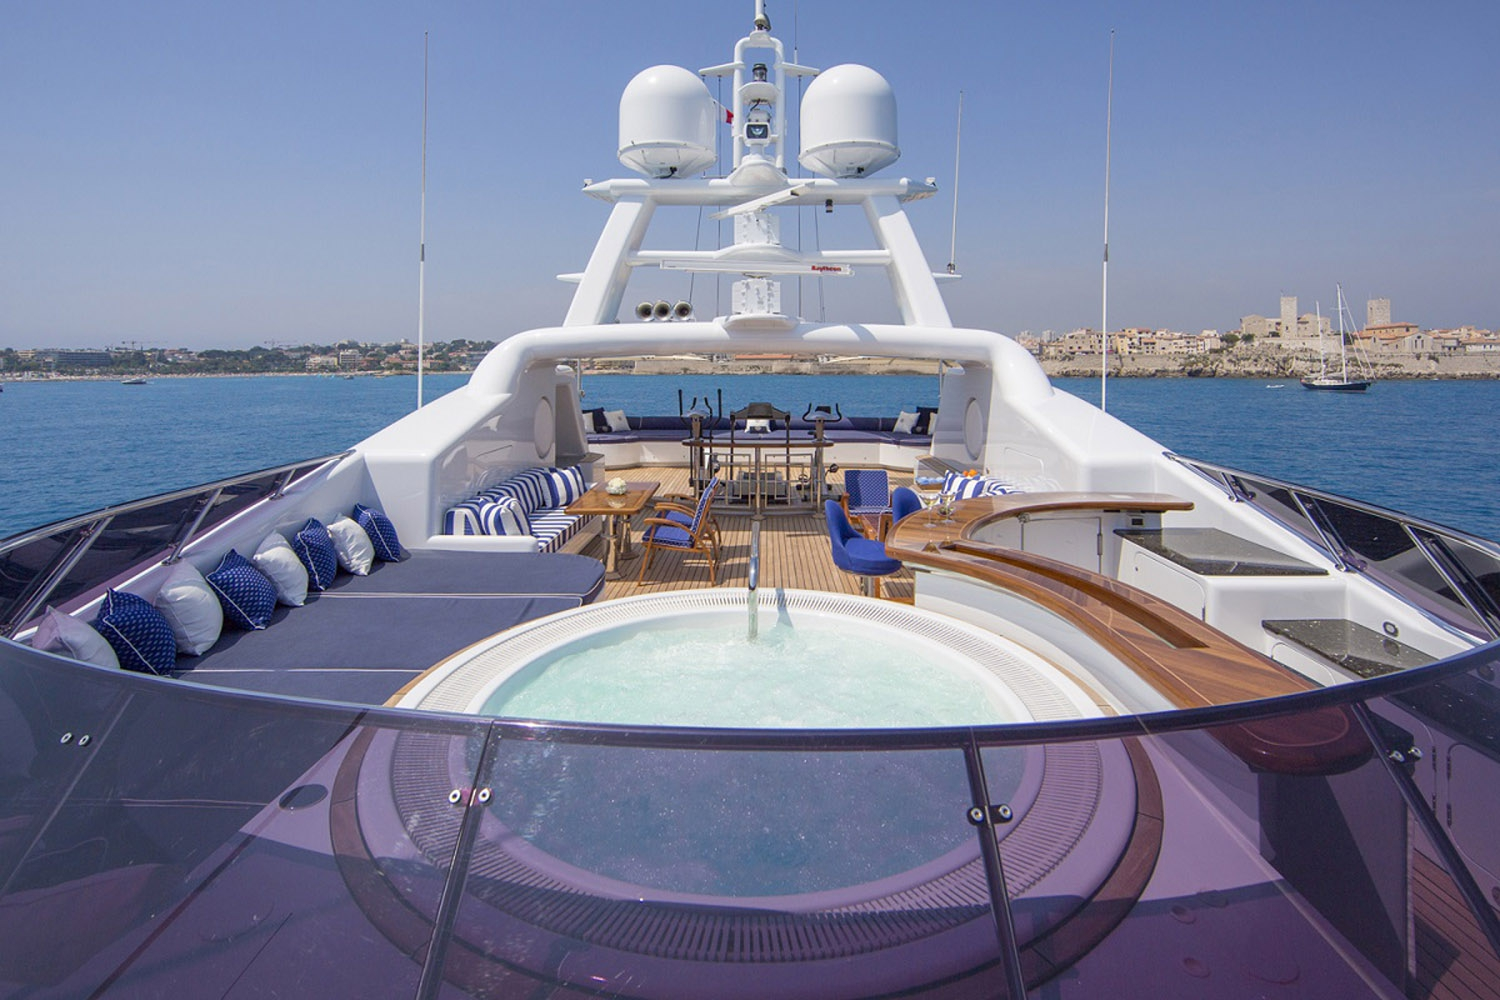 Sun deck with Jacuzzi, sunbathing area and a fitness area